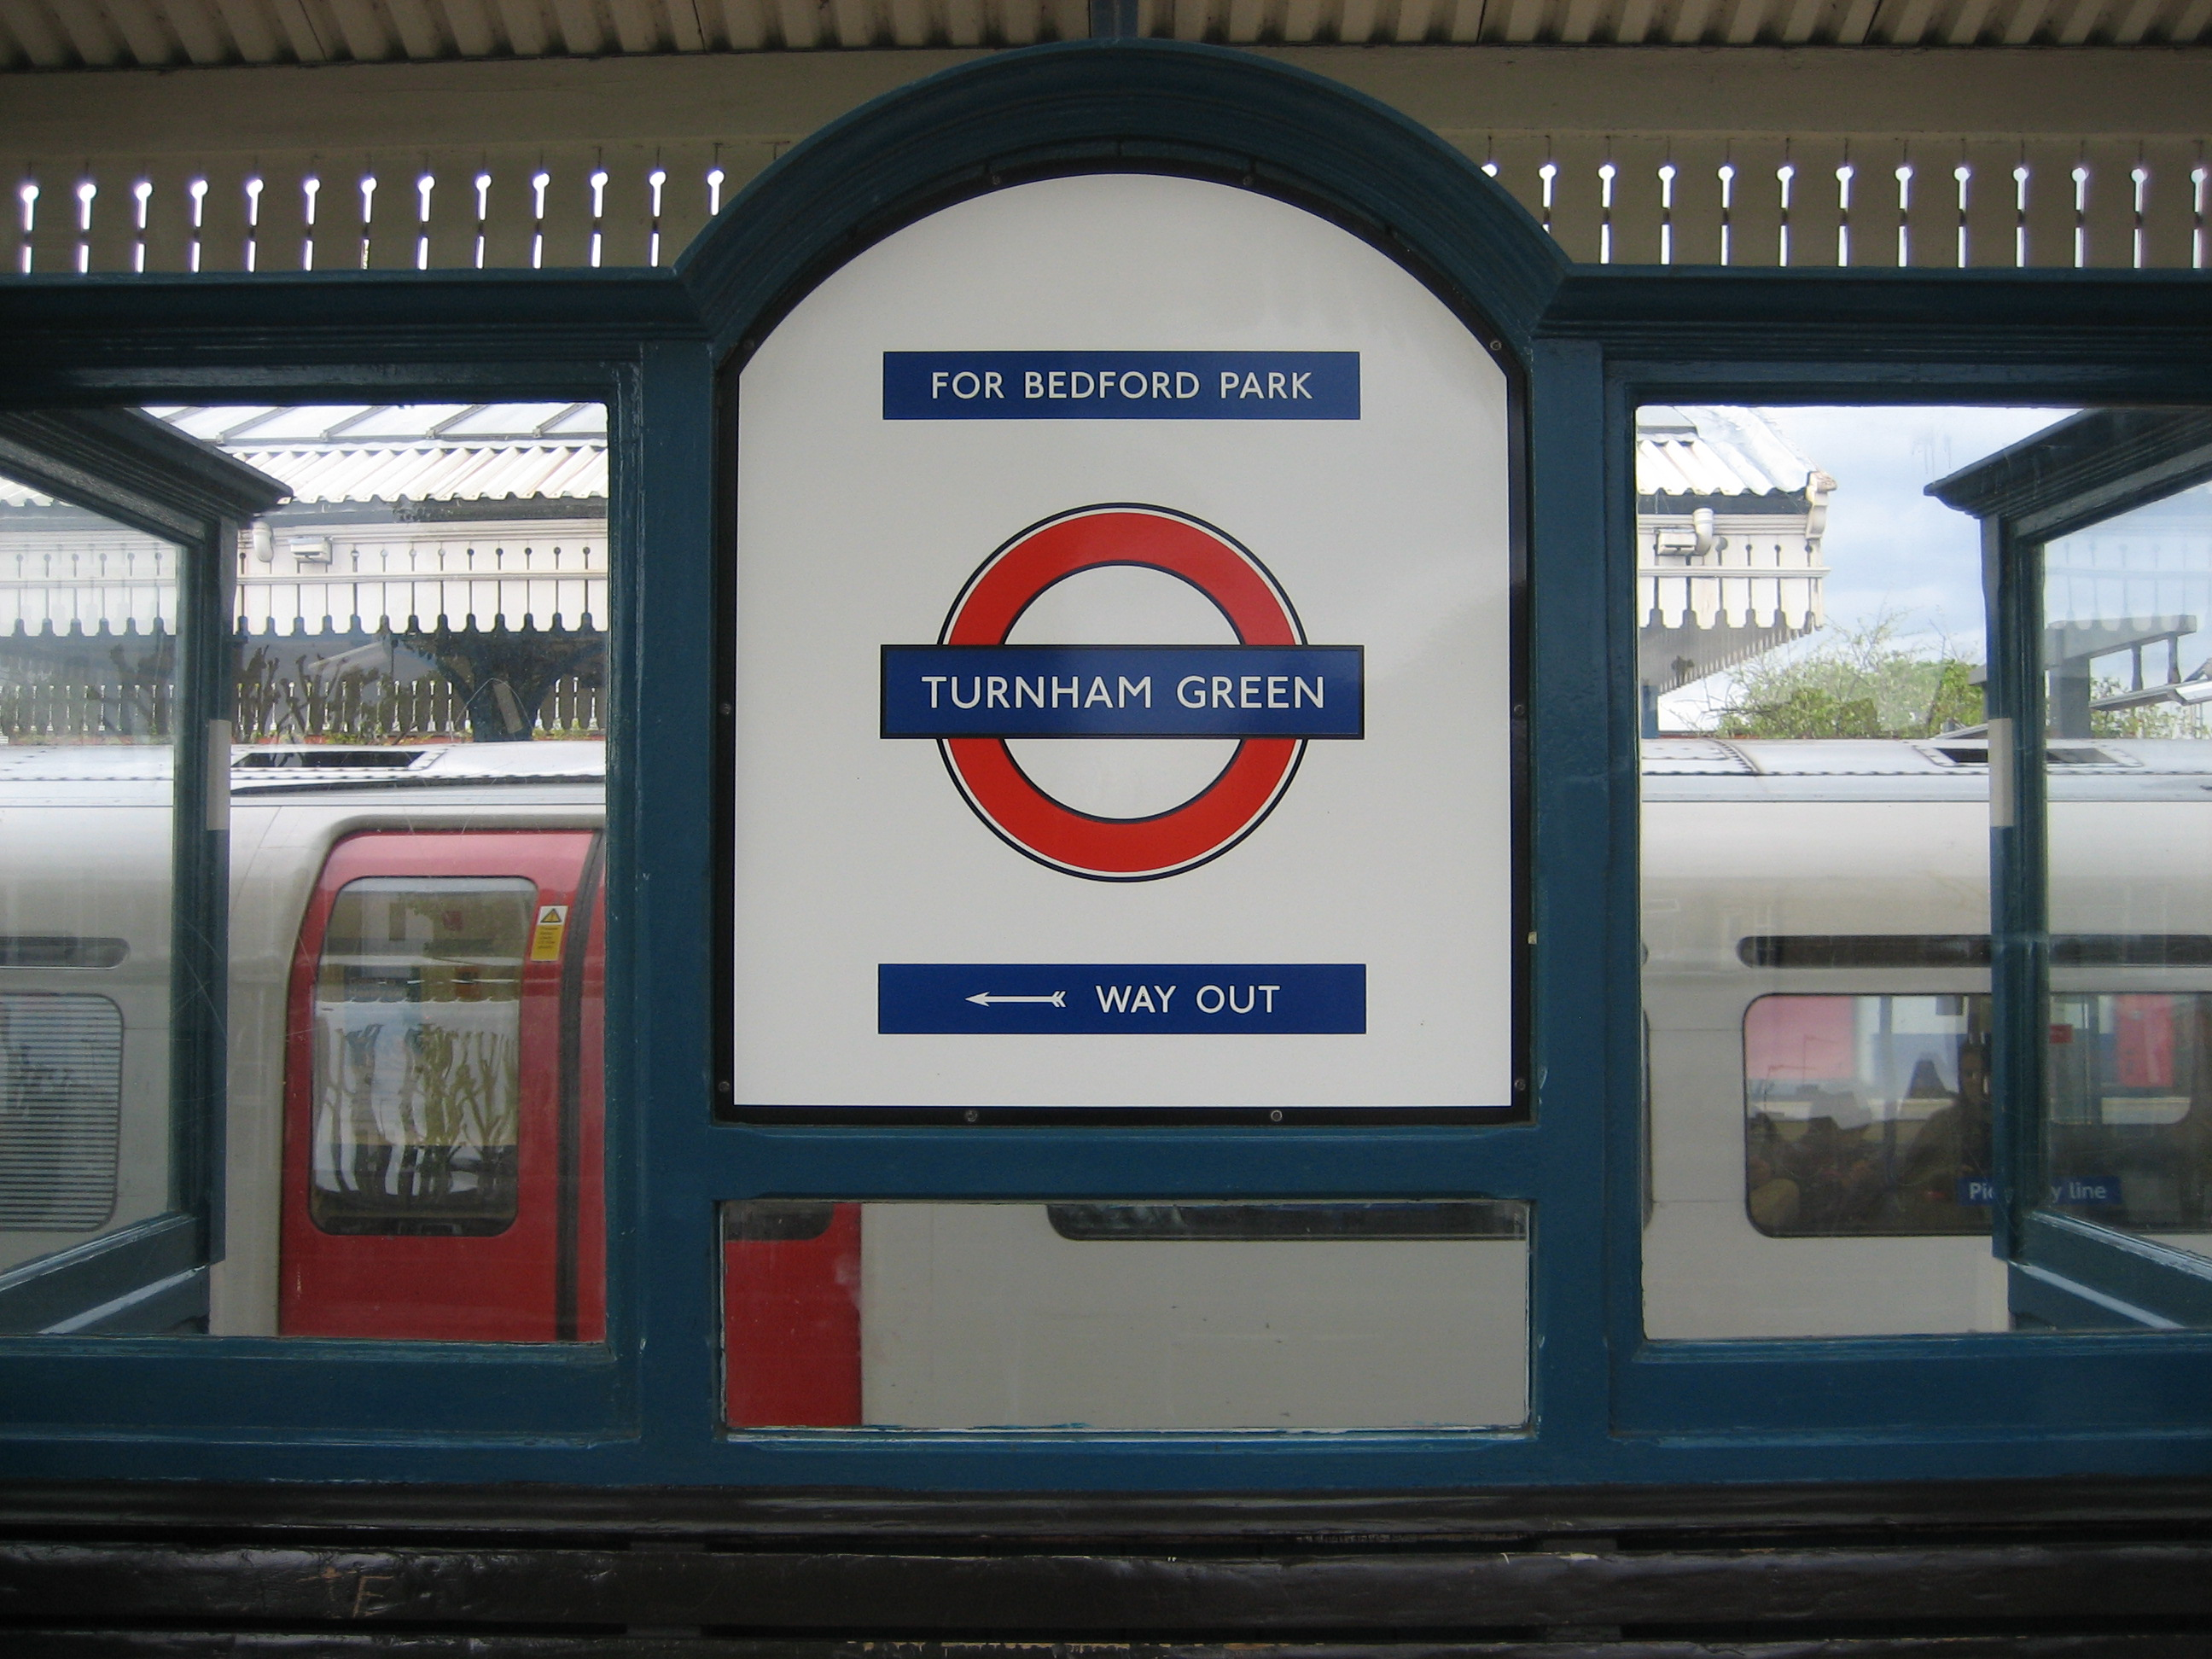 25. The benches at Turnham Green | 150 great things about the Underground